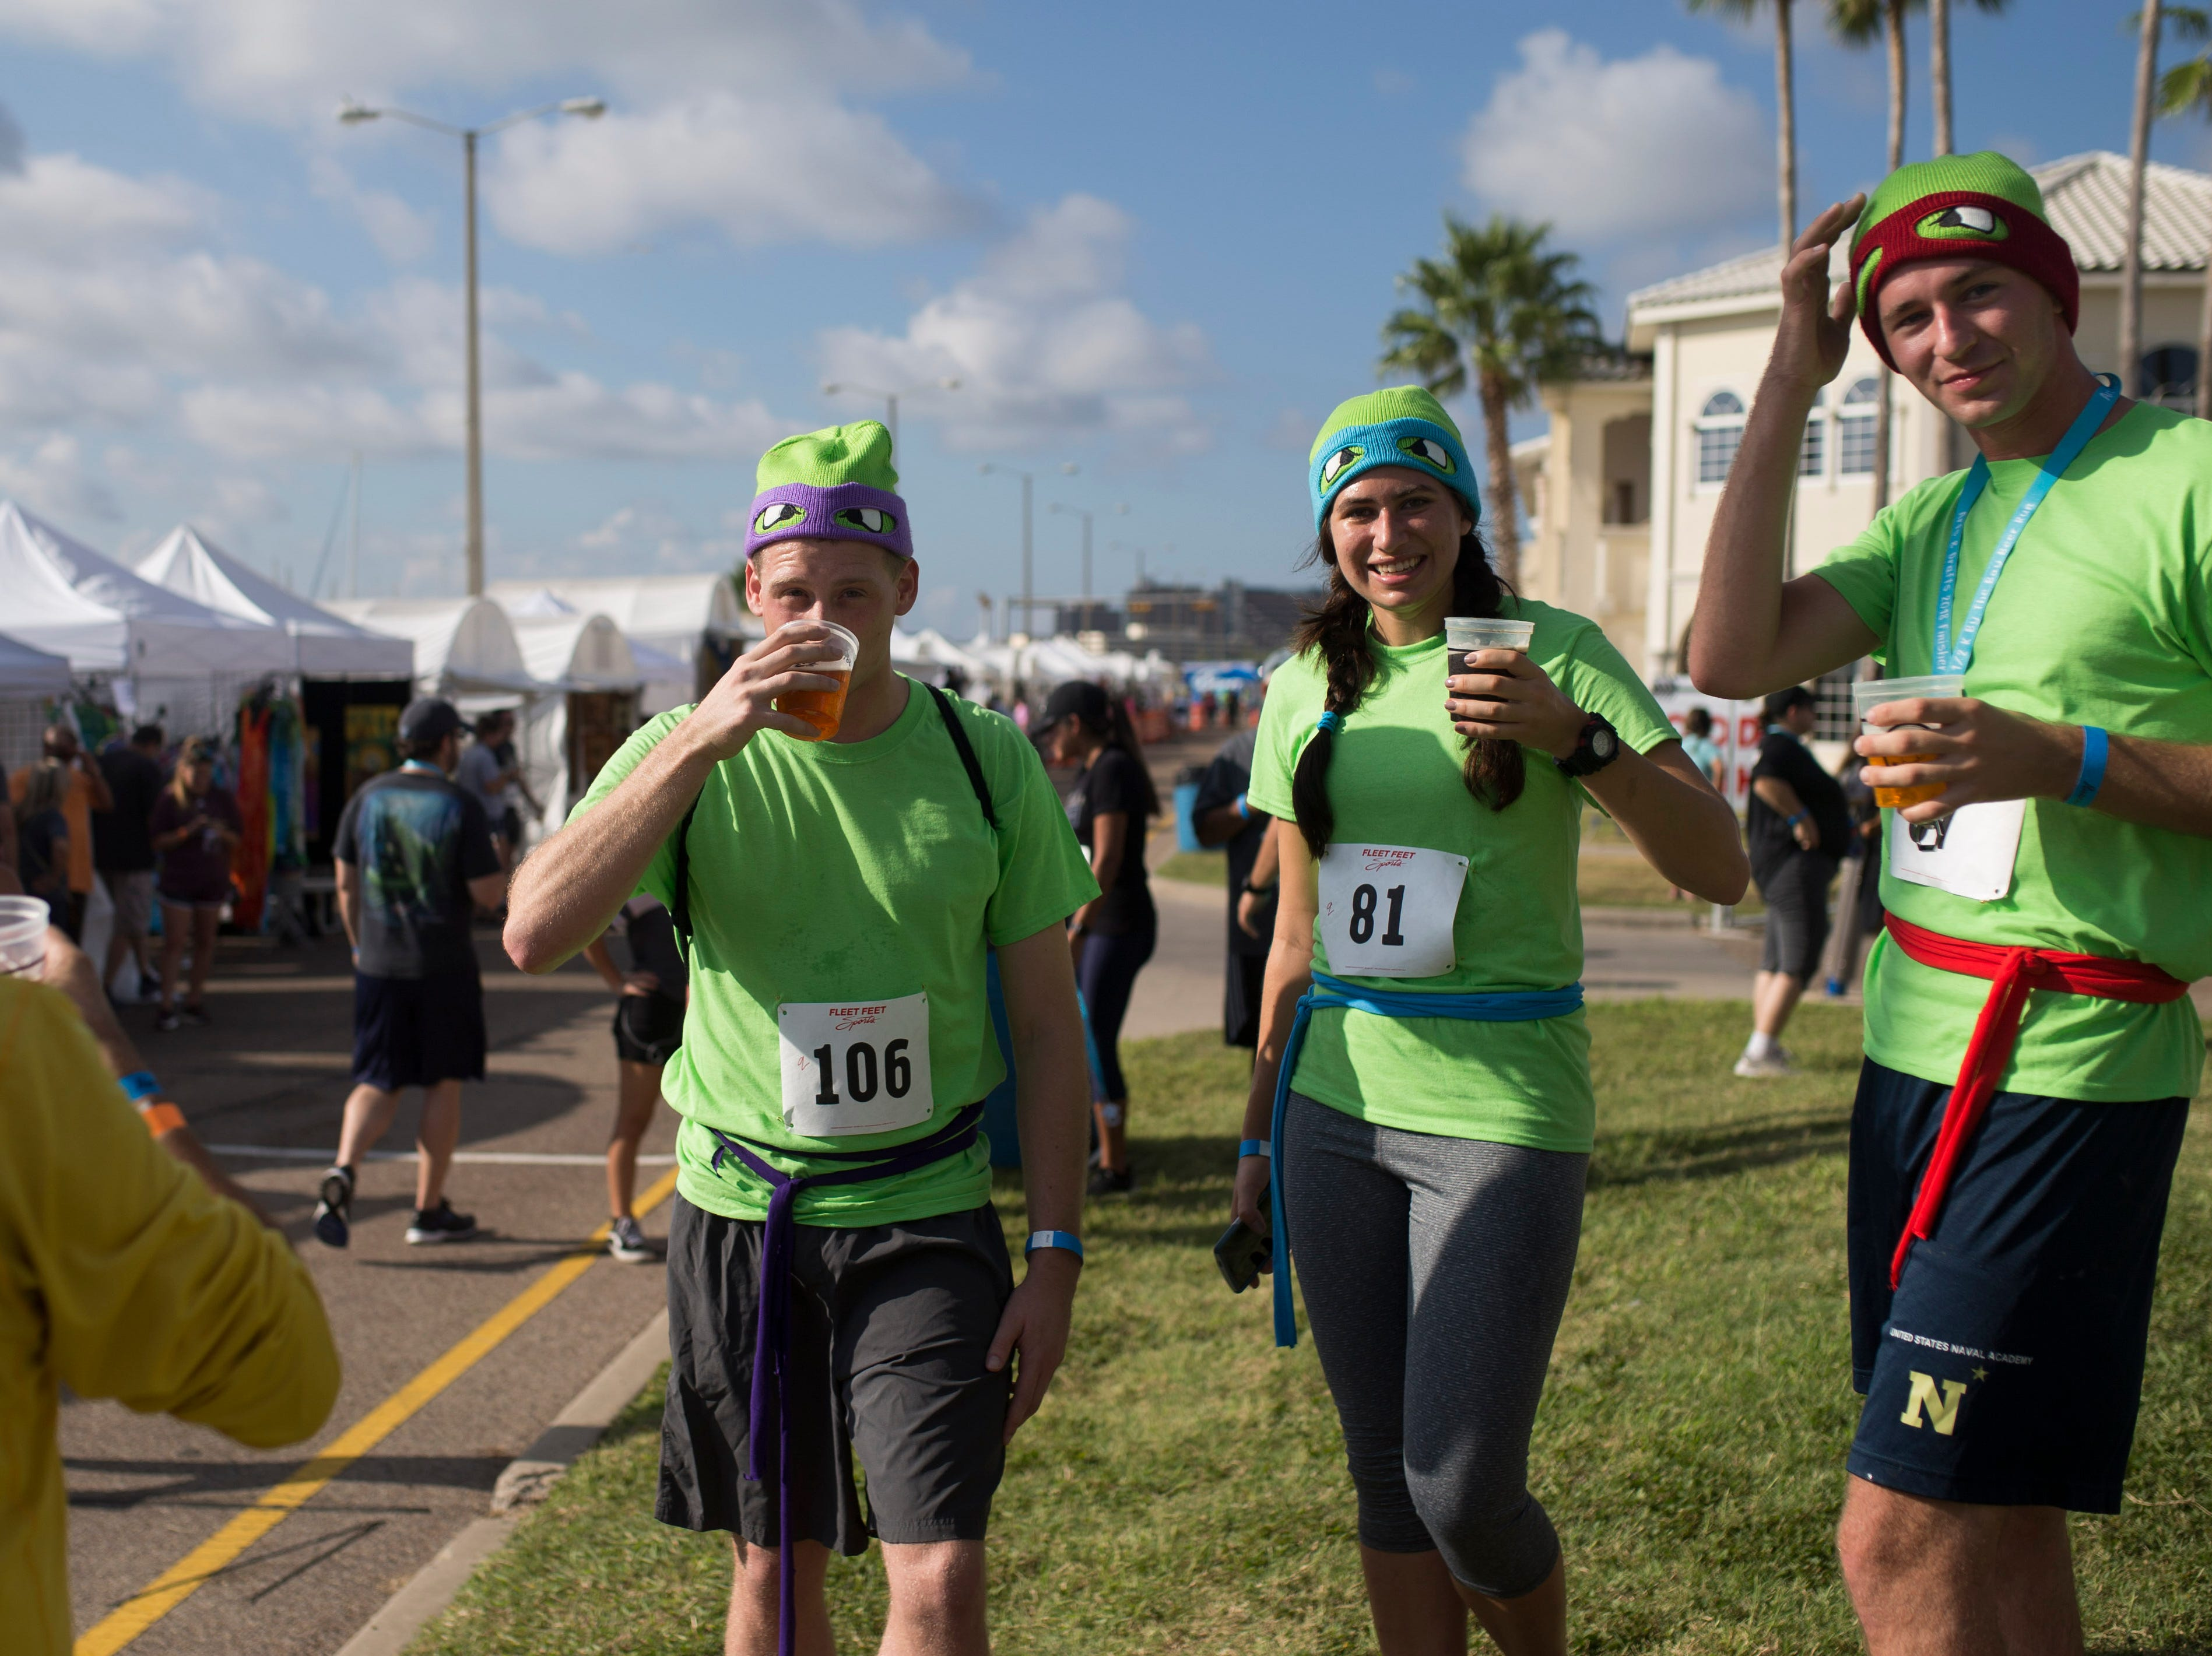 Cooper Wood, Laura Black, and John Holland enjoy their beers after competing in the 1/2 K By the Bay Beer Run during the annual Arts Alive Festival at the Art Center of Corpus Christi on Saturday, Sep. 1, 2018.